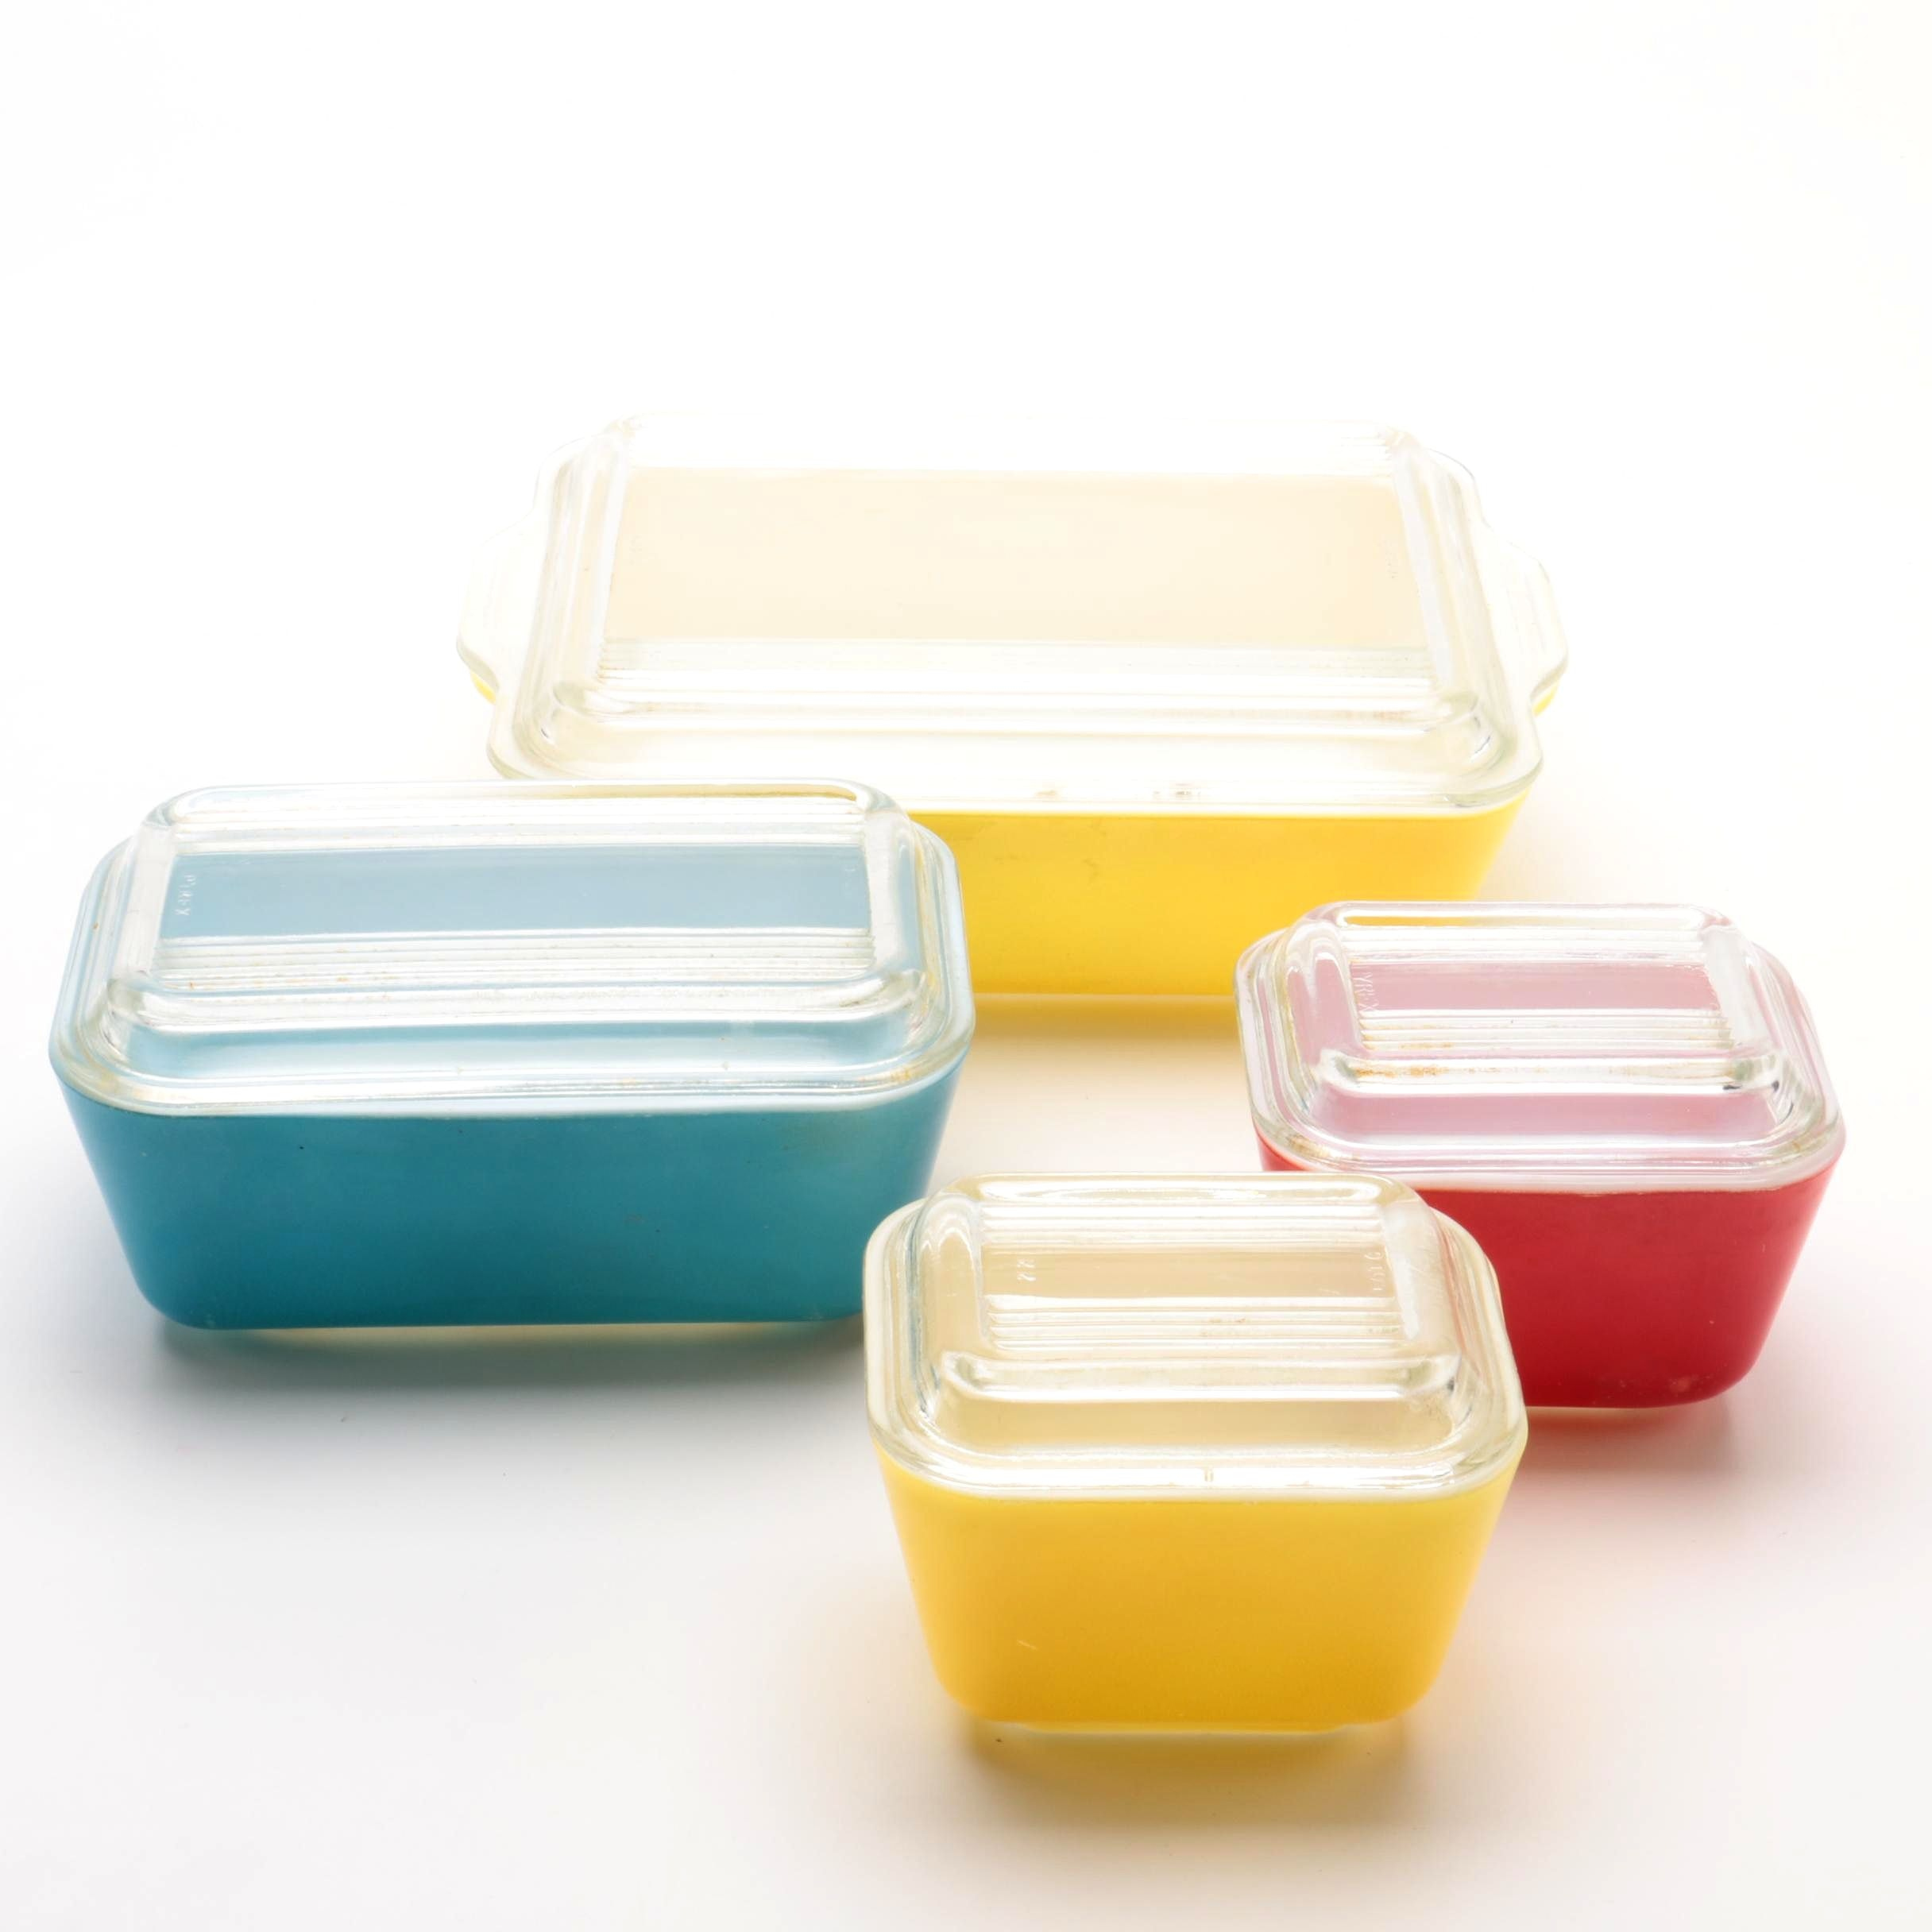 Vintage Pyrex Primary Colors Refrigerator Dishes Ebth